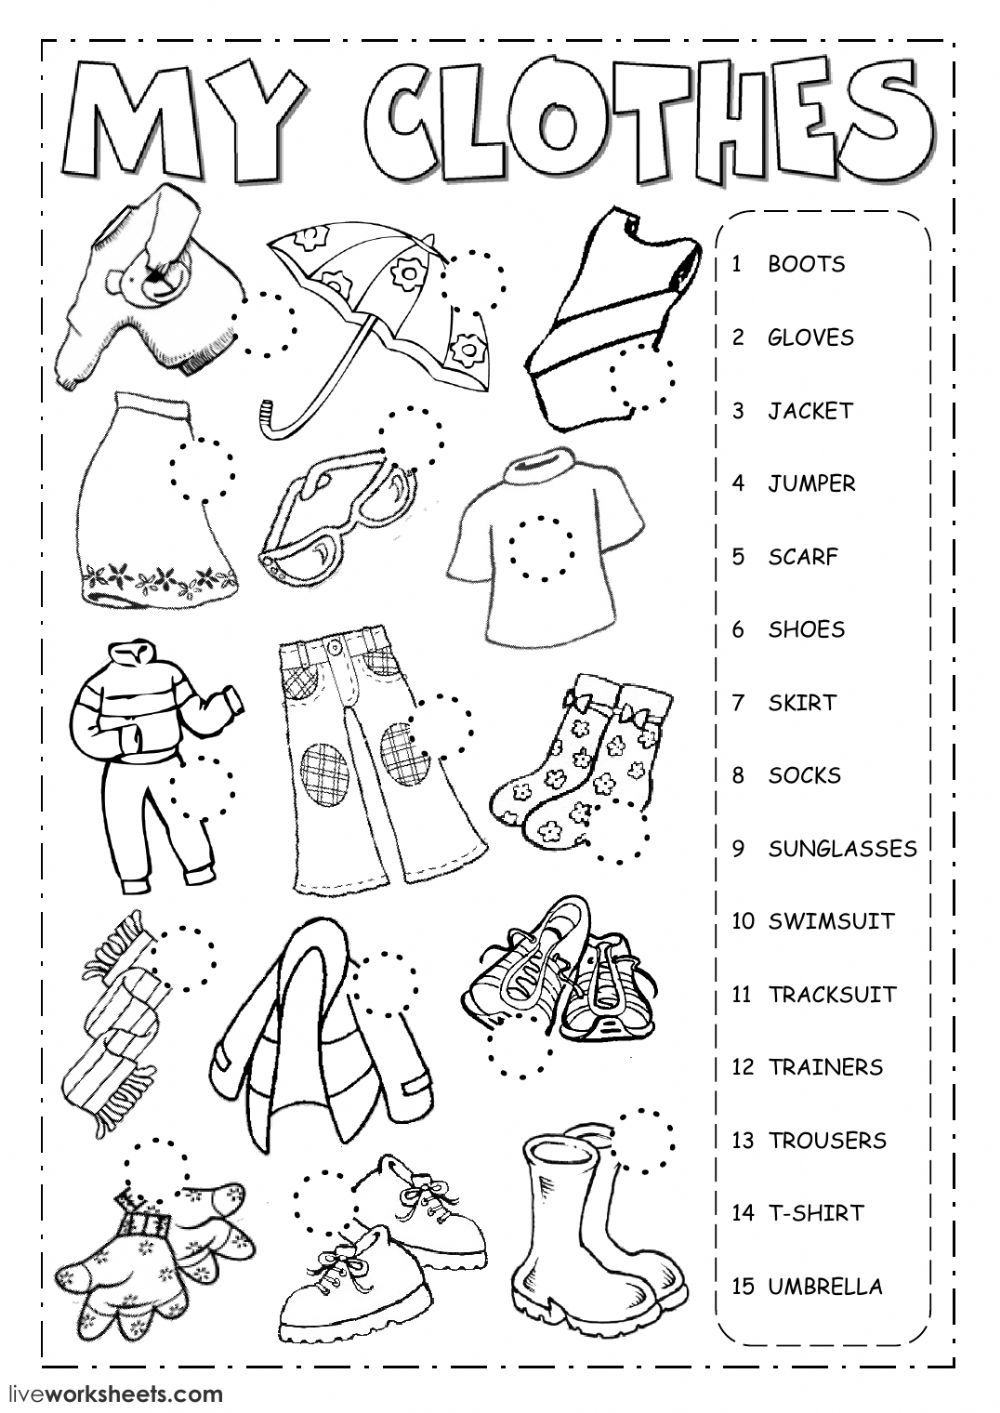 The clothes English as a Second Language (ESL) worksheet